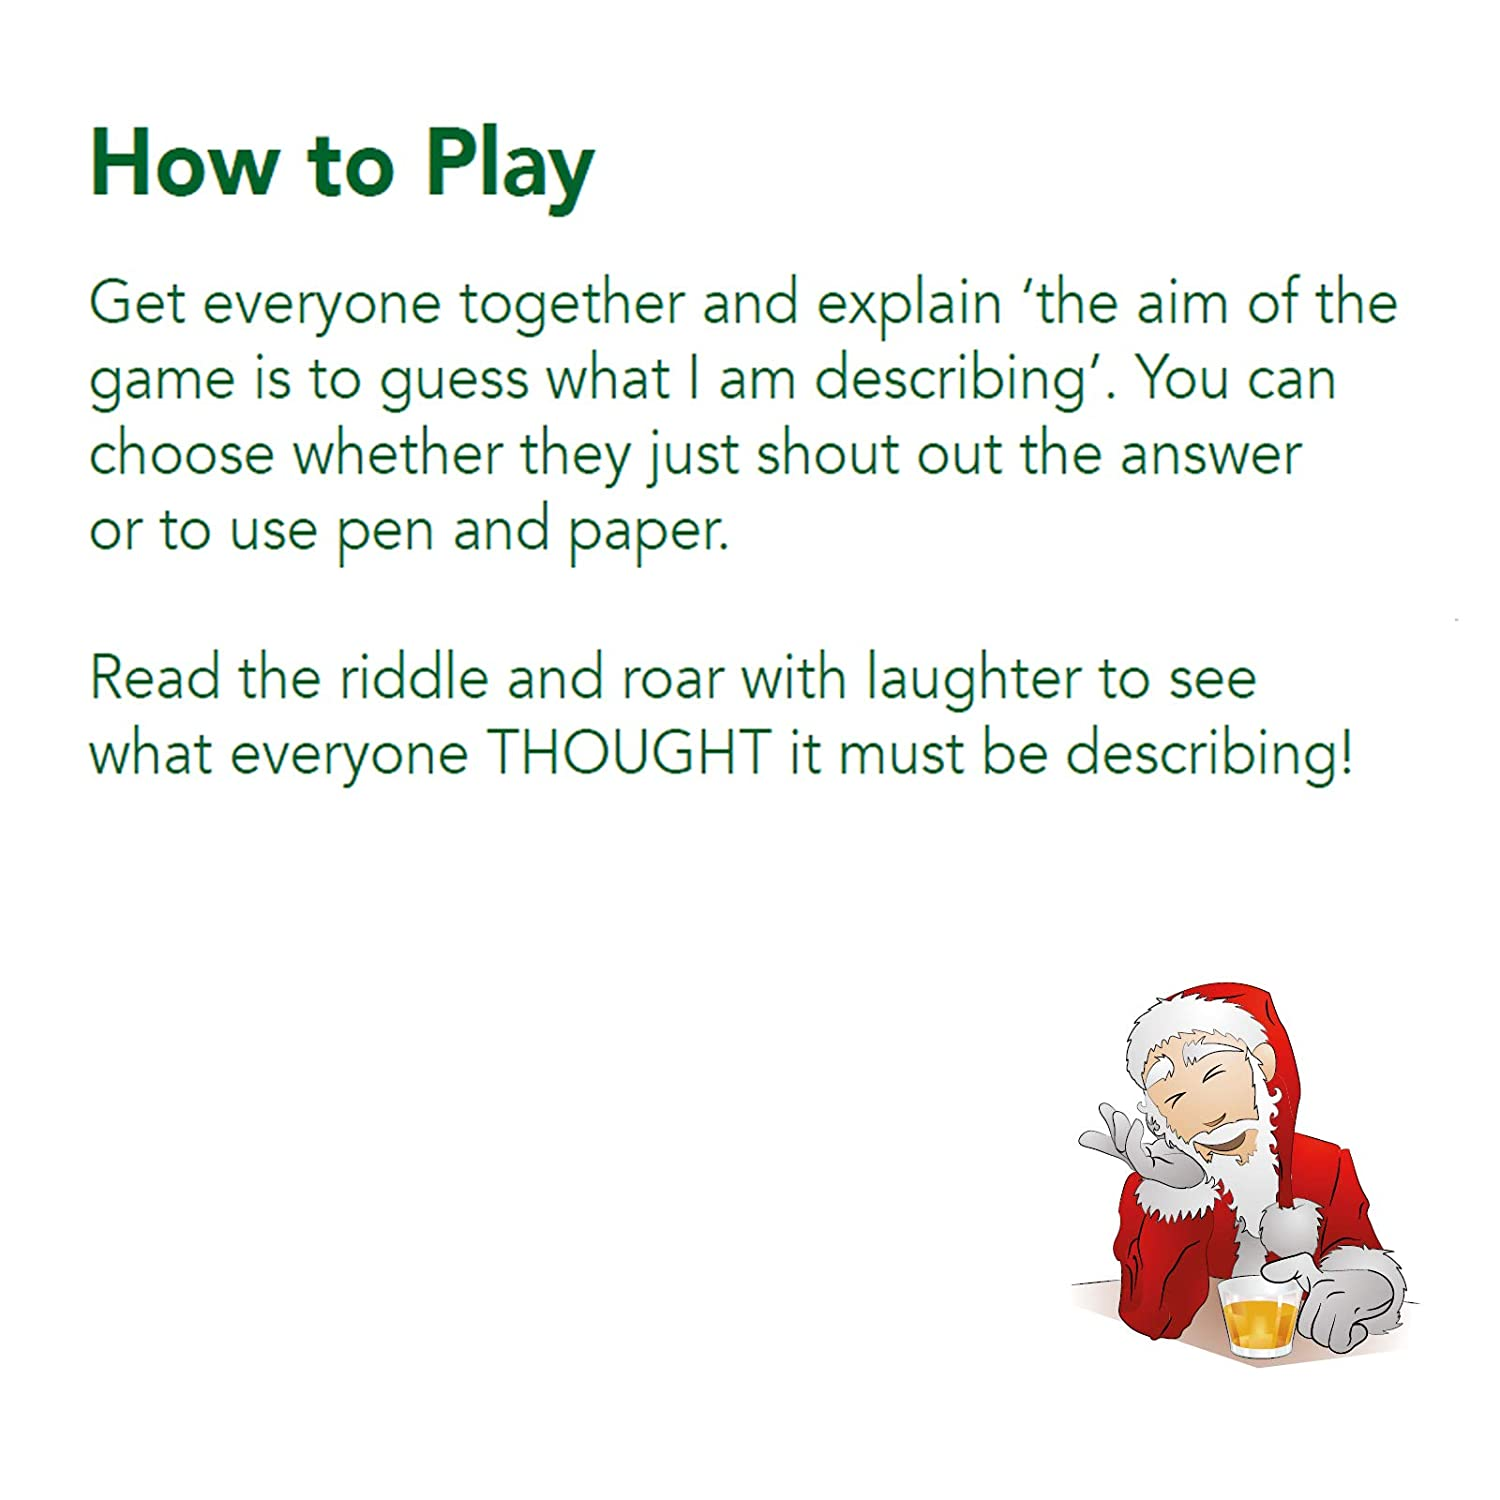 Office Christmas Party Stocking Fillers Or Secret Santa Christmas What Am I Xmas Games For Adults 20 Dirty Minds Innuendo Riddles Christmas Games For Adults Not Rude But People Think It Is Novelty